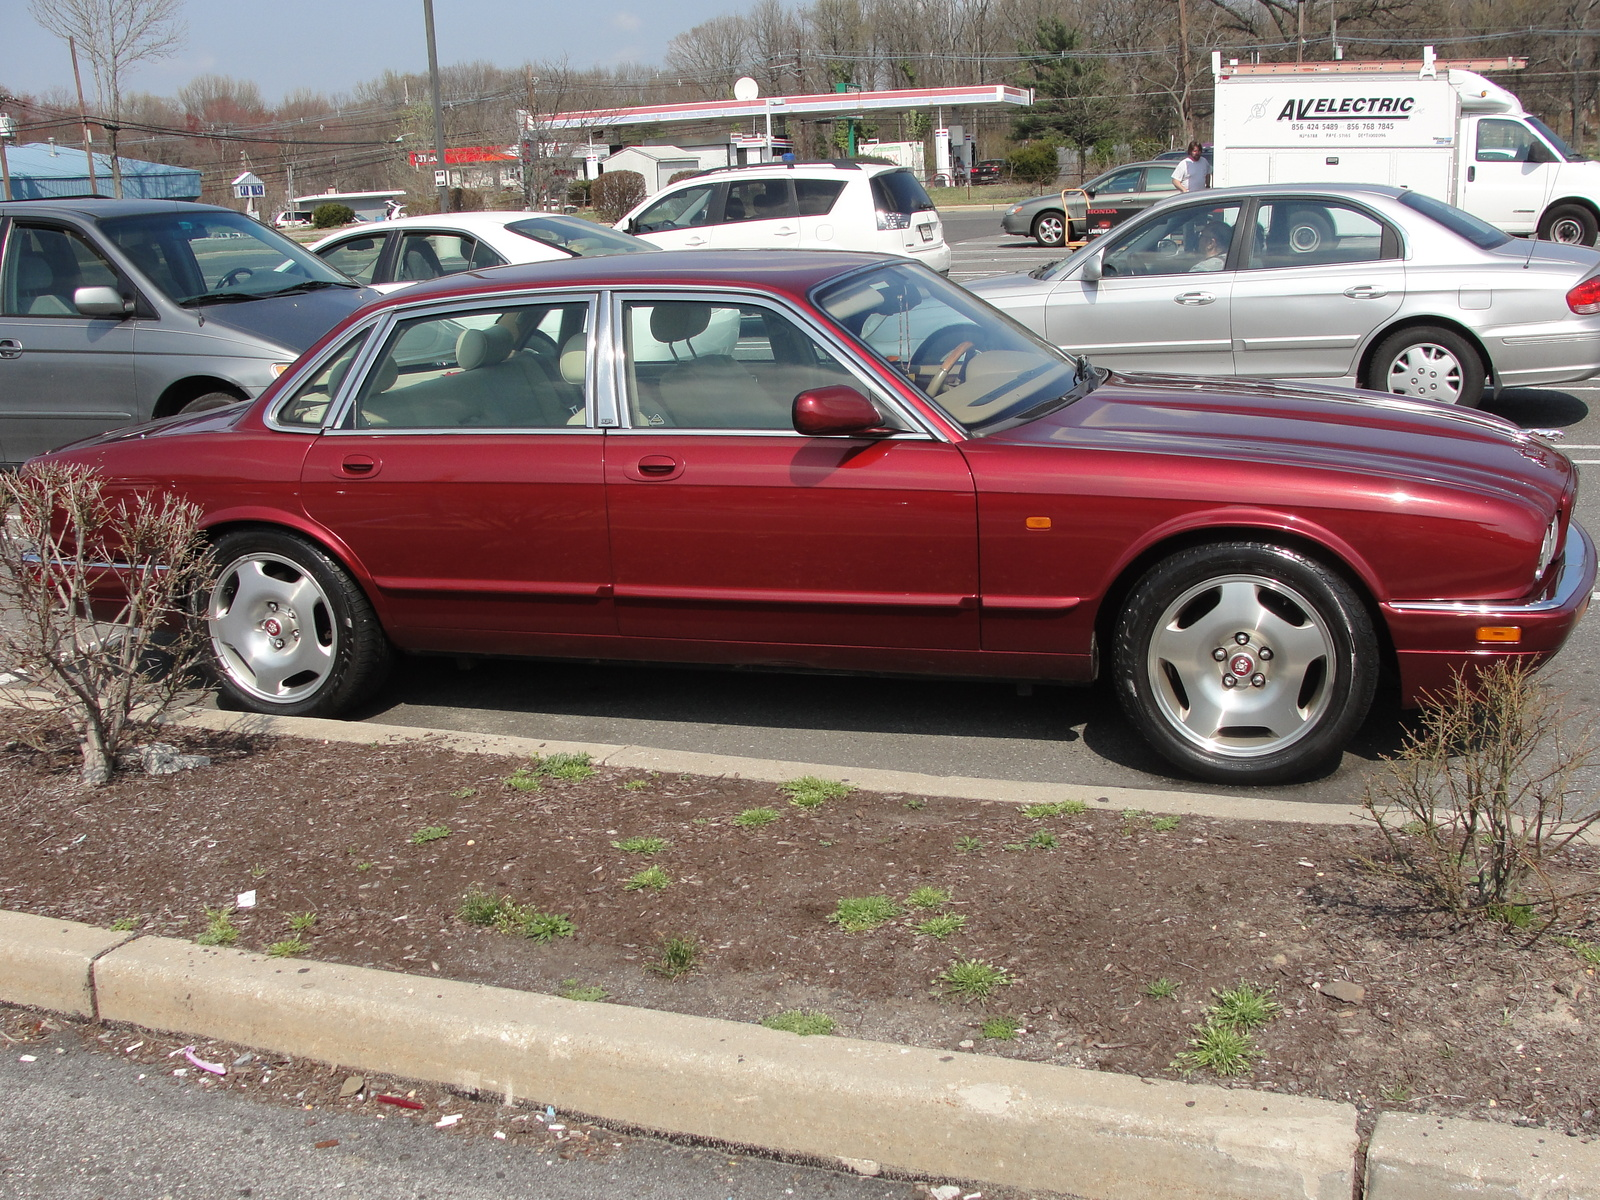 forum southwest xjr jaguar for buy sale fs used classifieds forums private trade